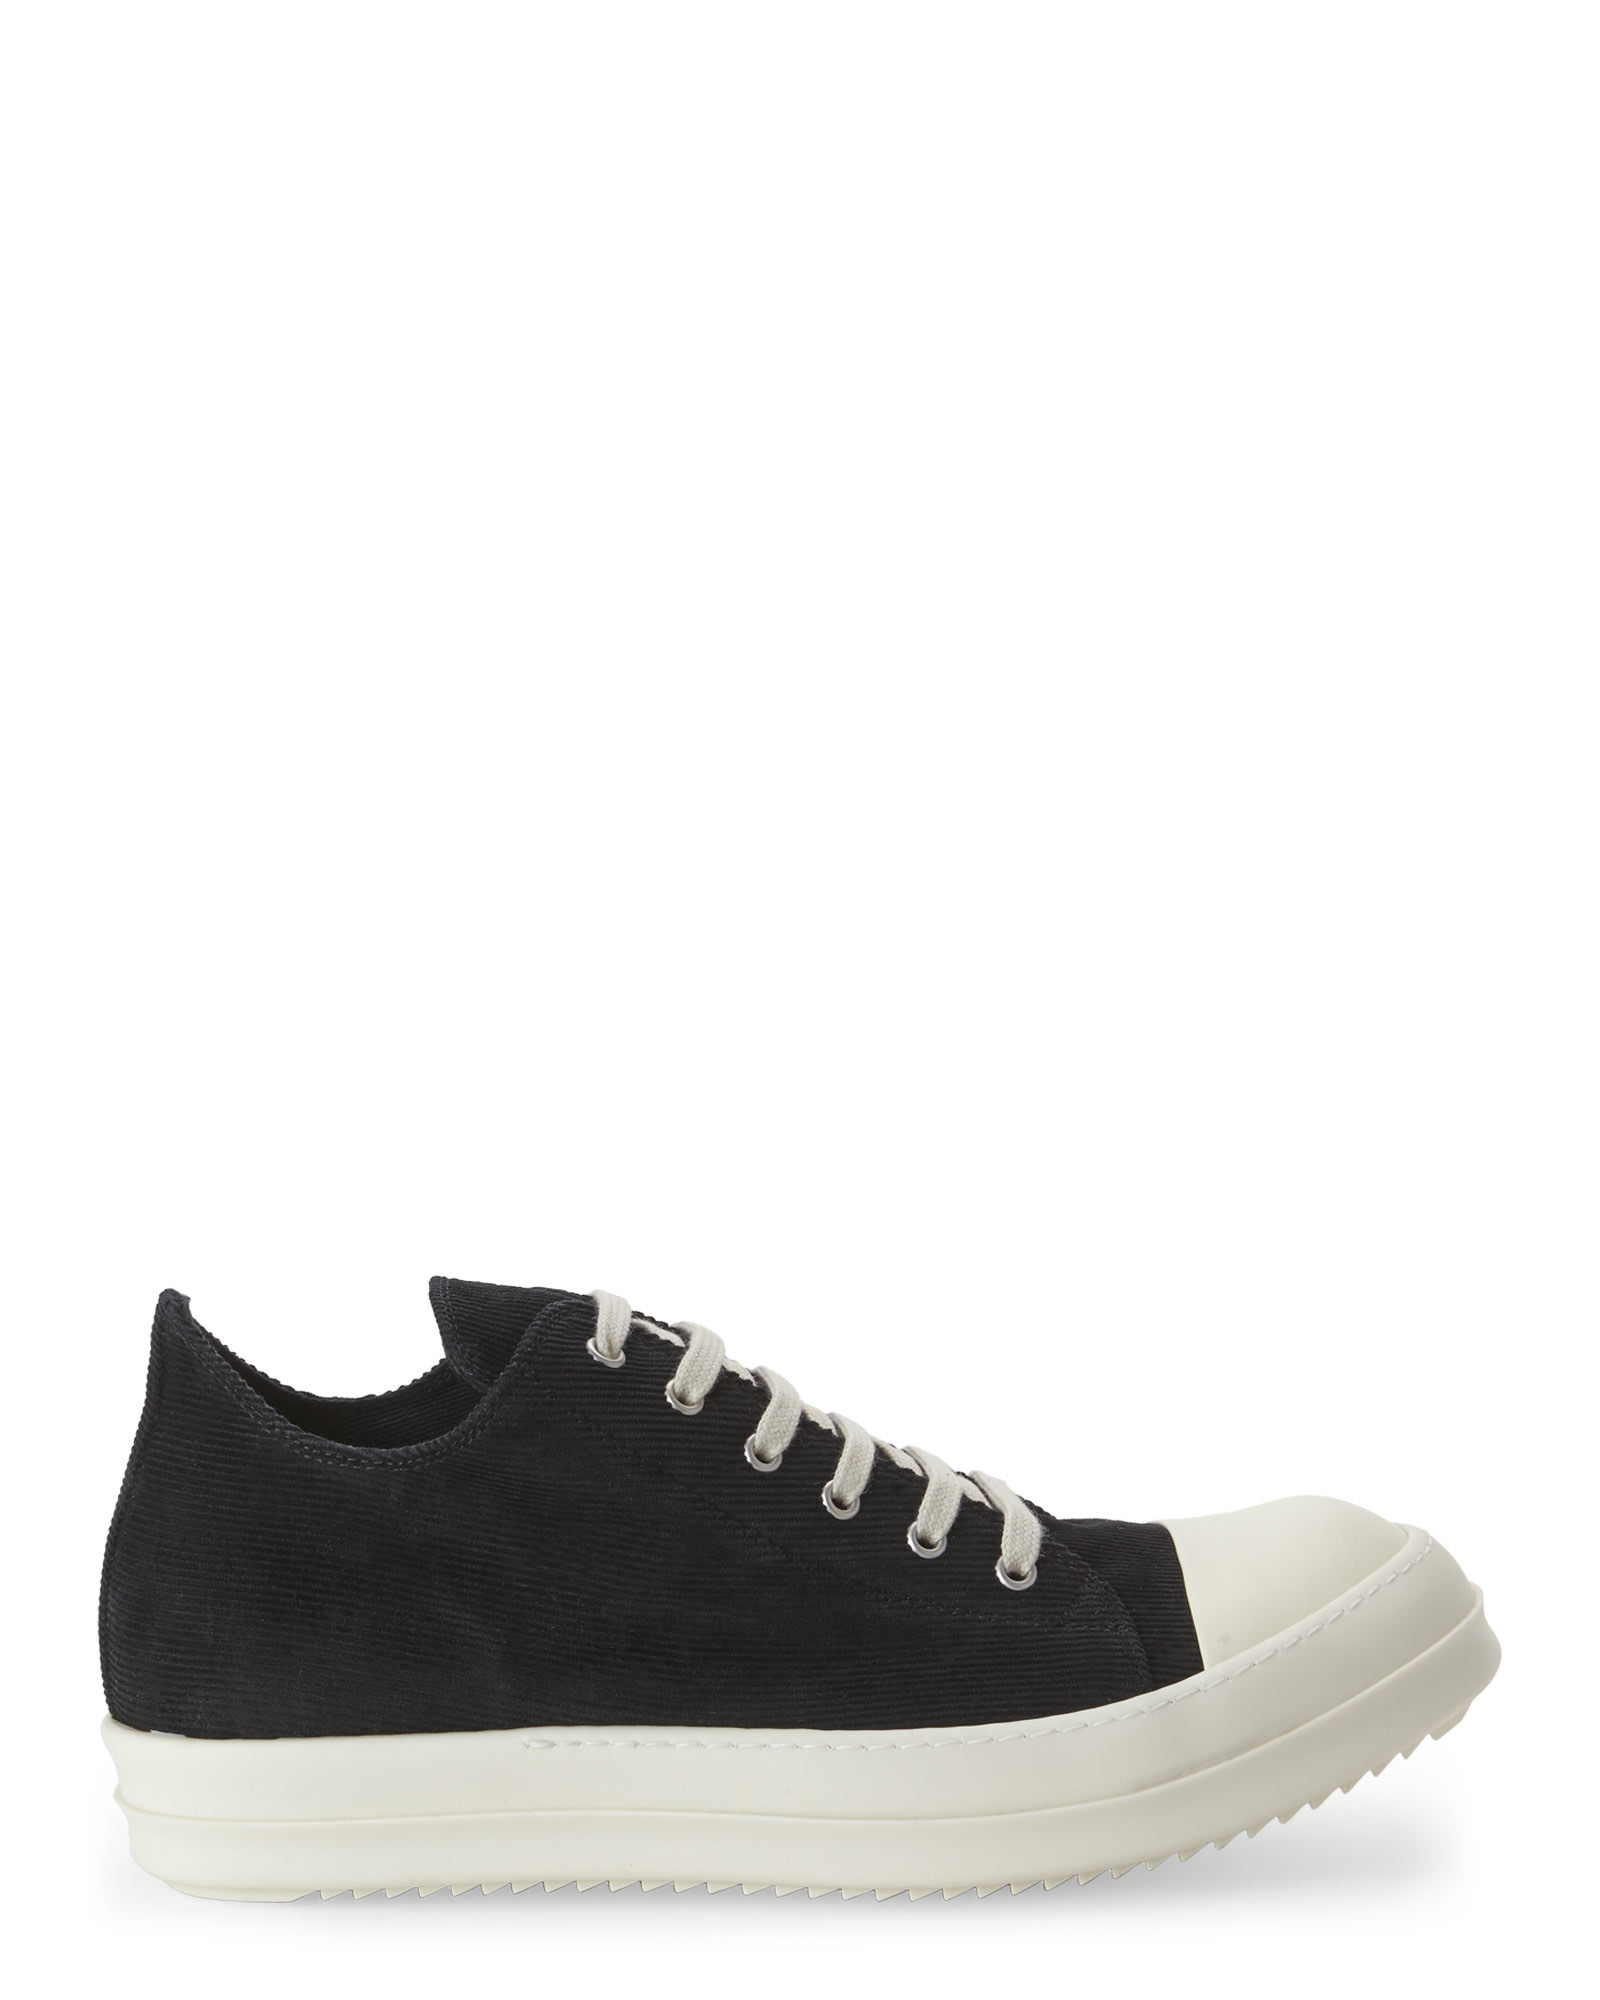 Rick Owens & Off- Canvas Low Sneakers